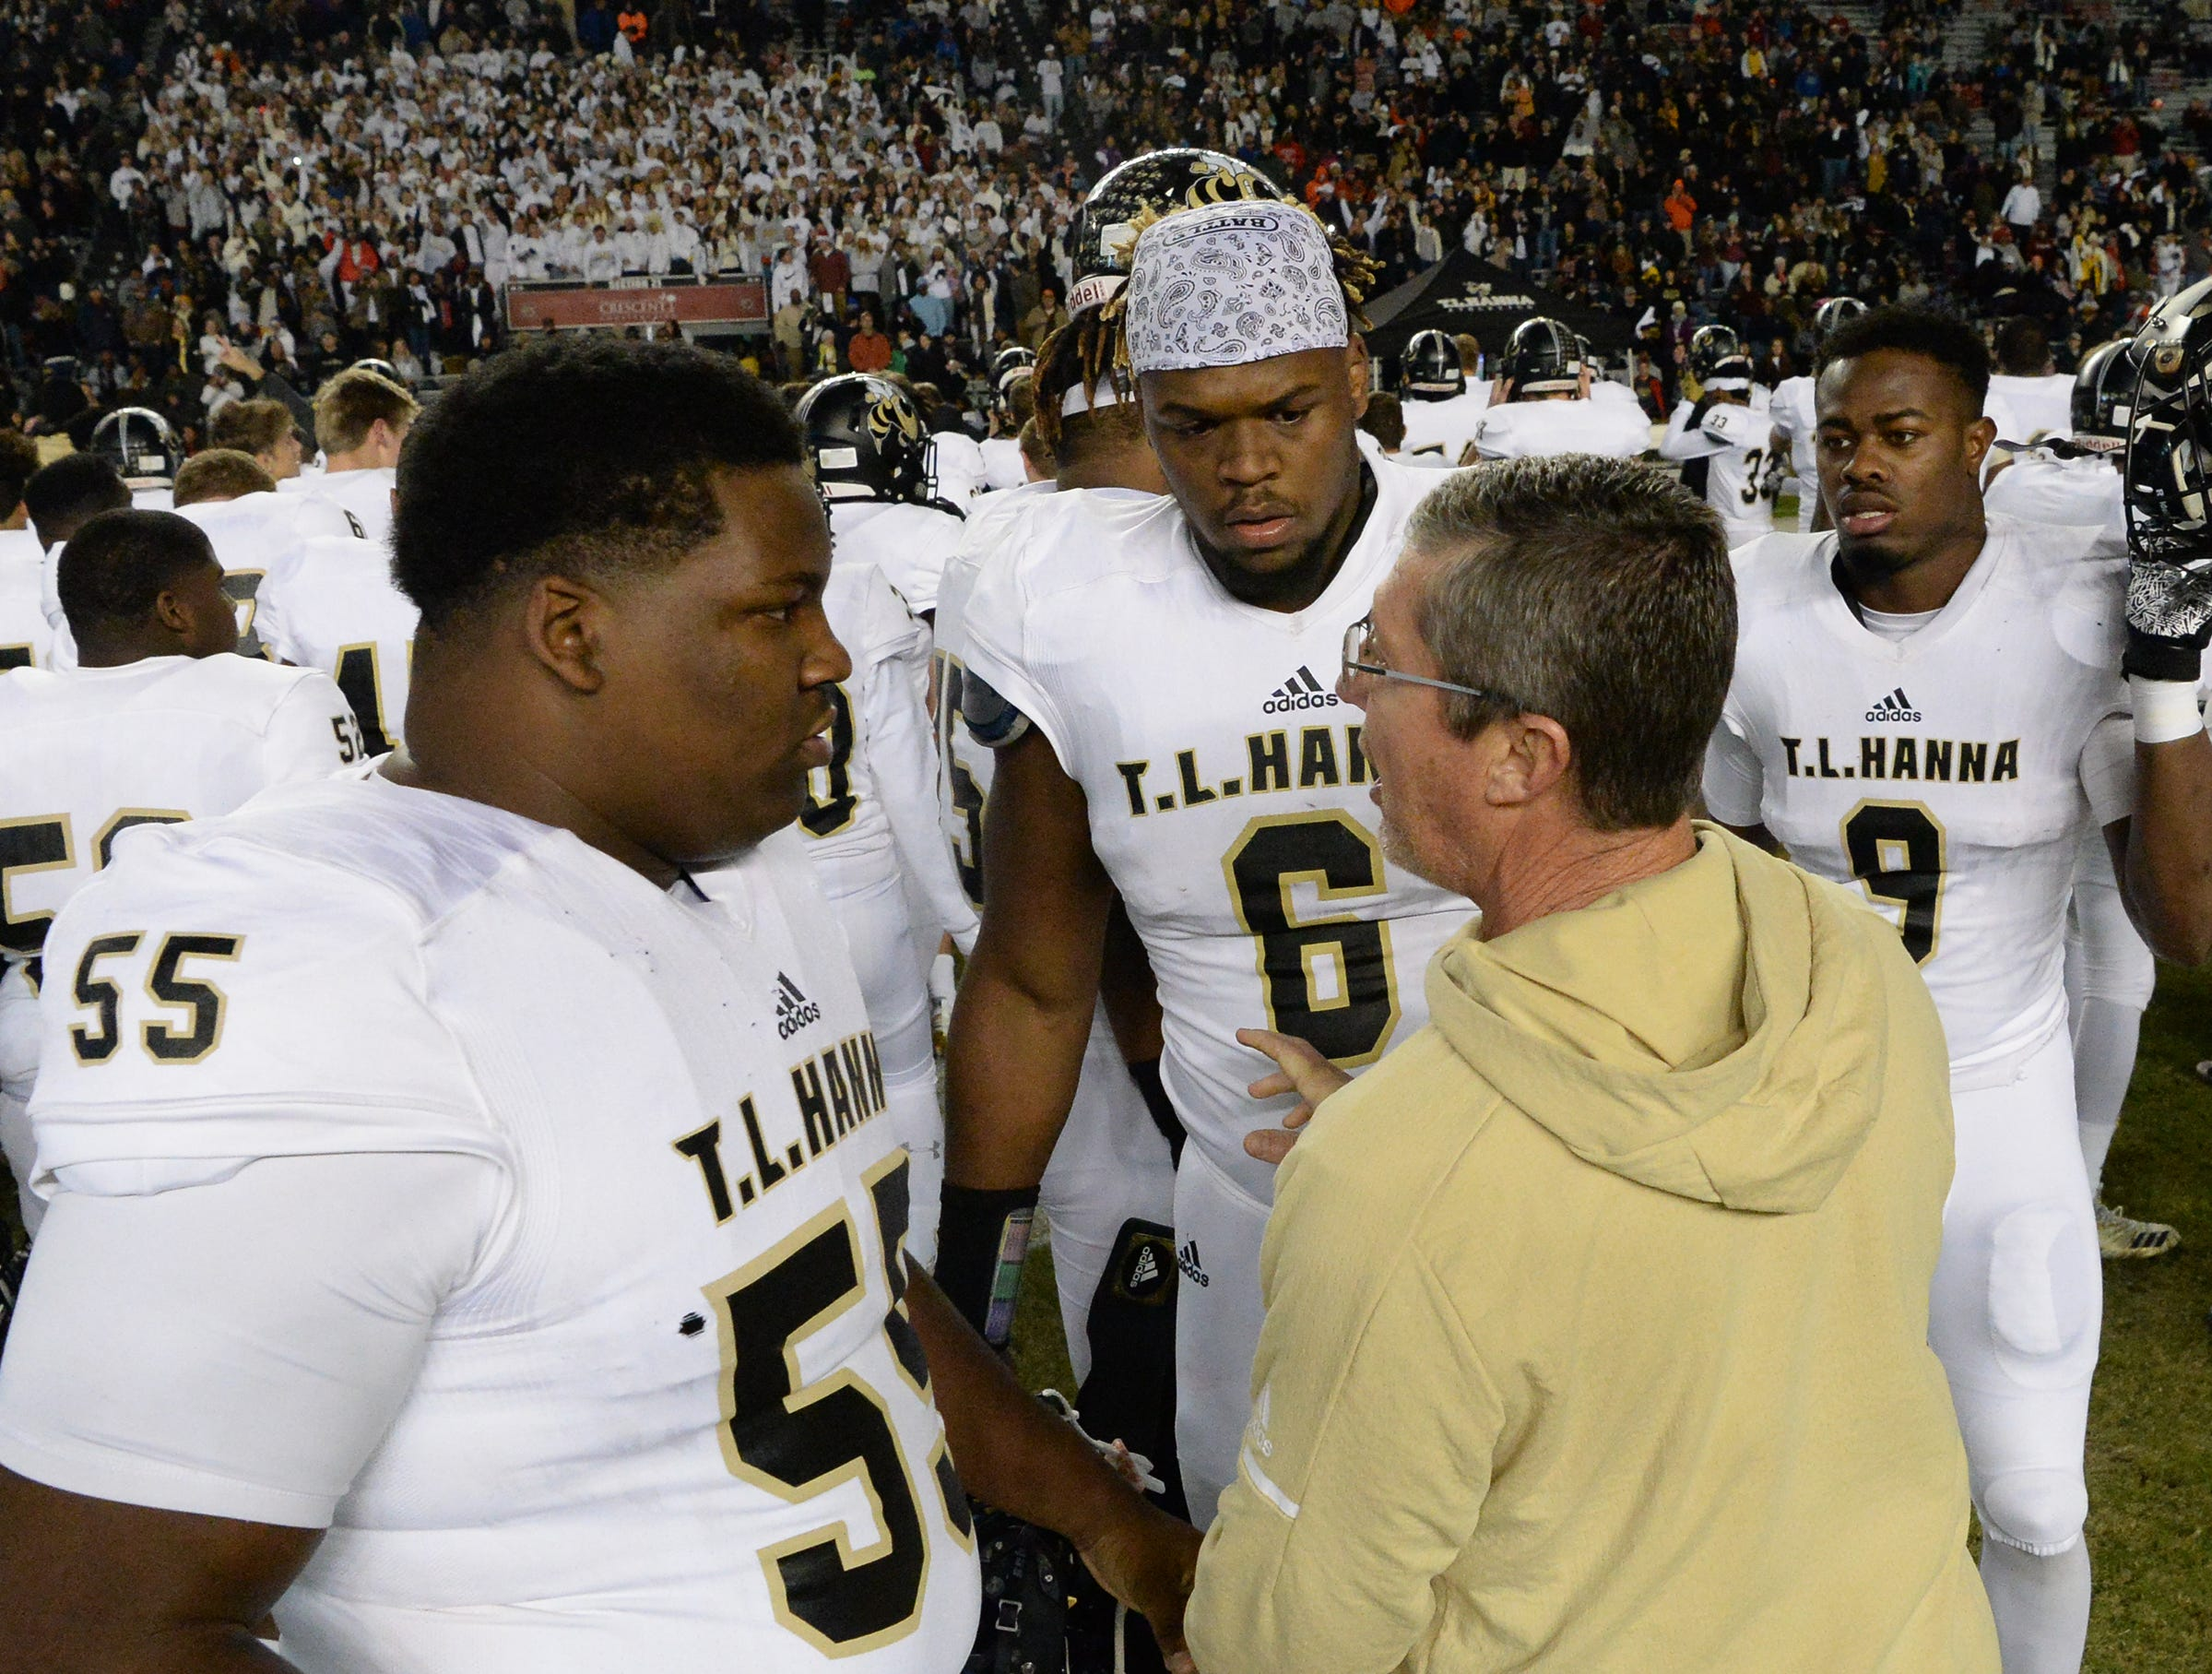 TL Hanna senior Devonte Jones (55) and TL Hanna senior Zacch Pickens (6) listen to TL Hanna head coach Jeff Herron before the kickoff of the Class AAAAA state championship game at Williams-Brice Stadium in Columbia Saturday, December 8, 2018.